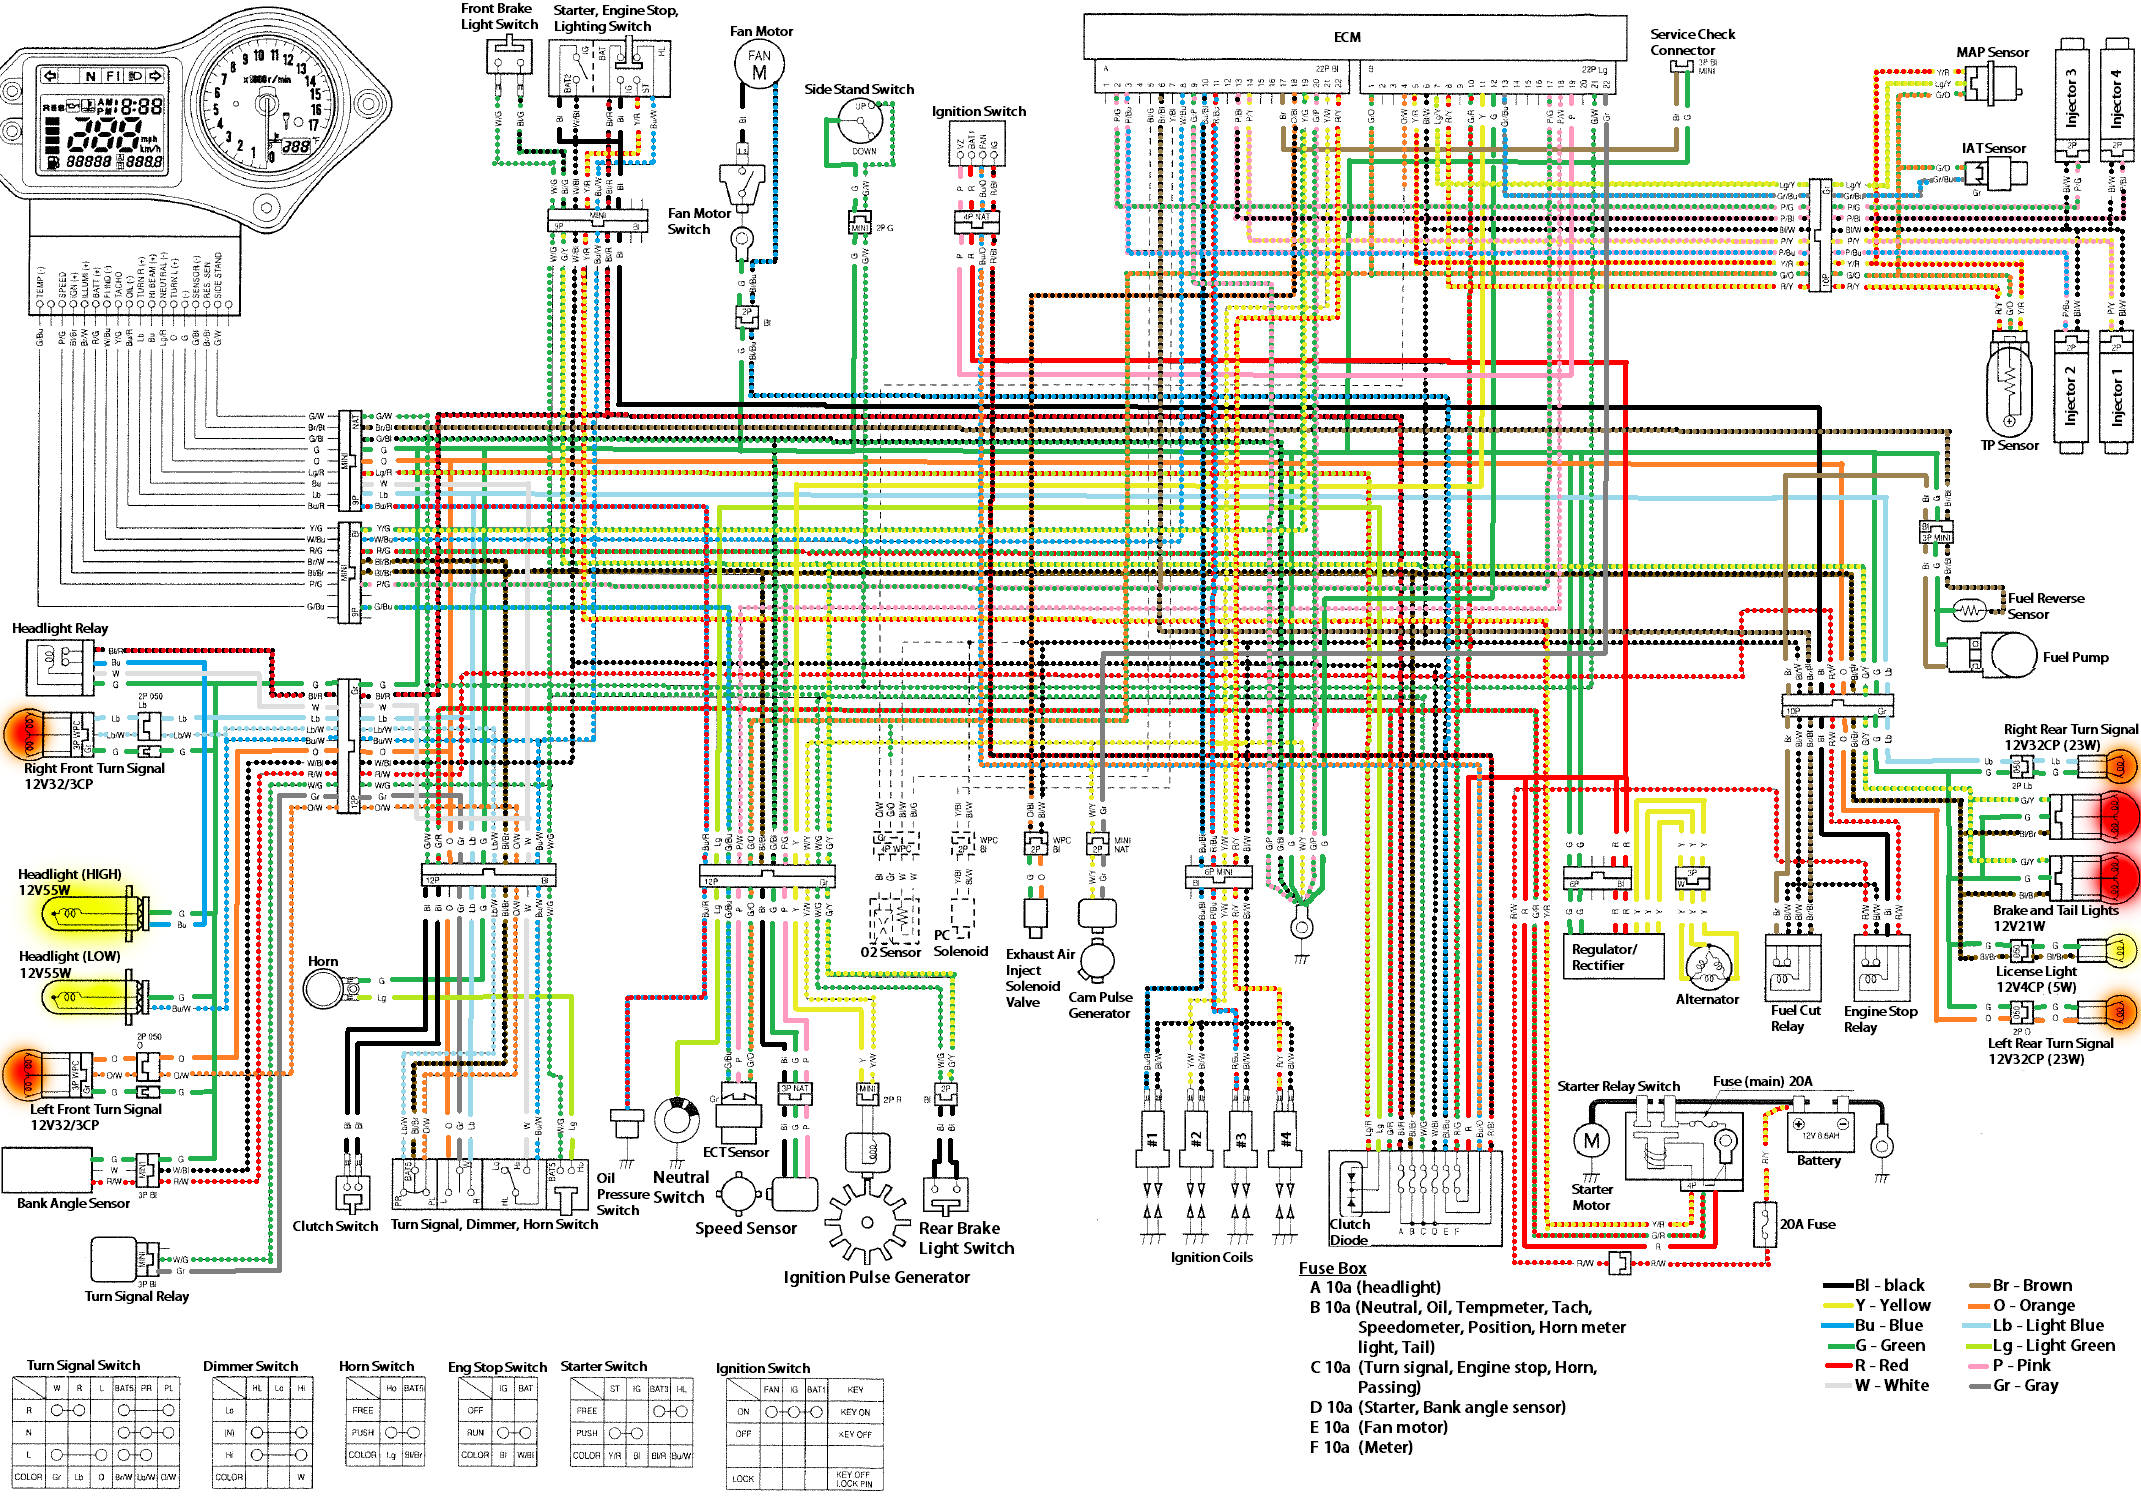 97 dodge wiring diagram